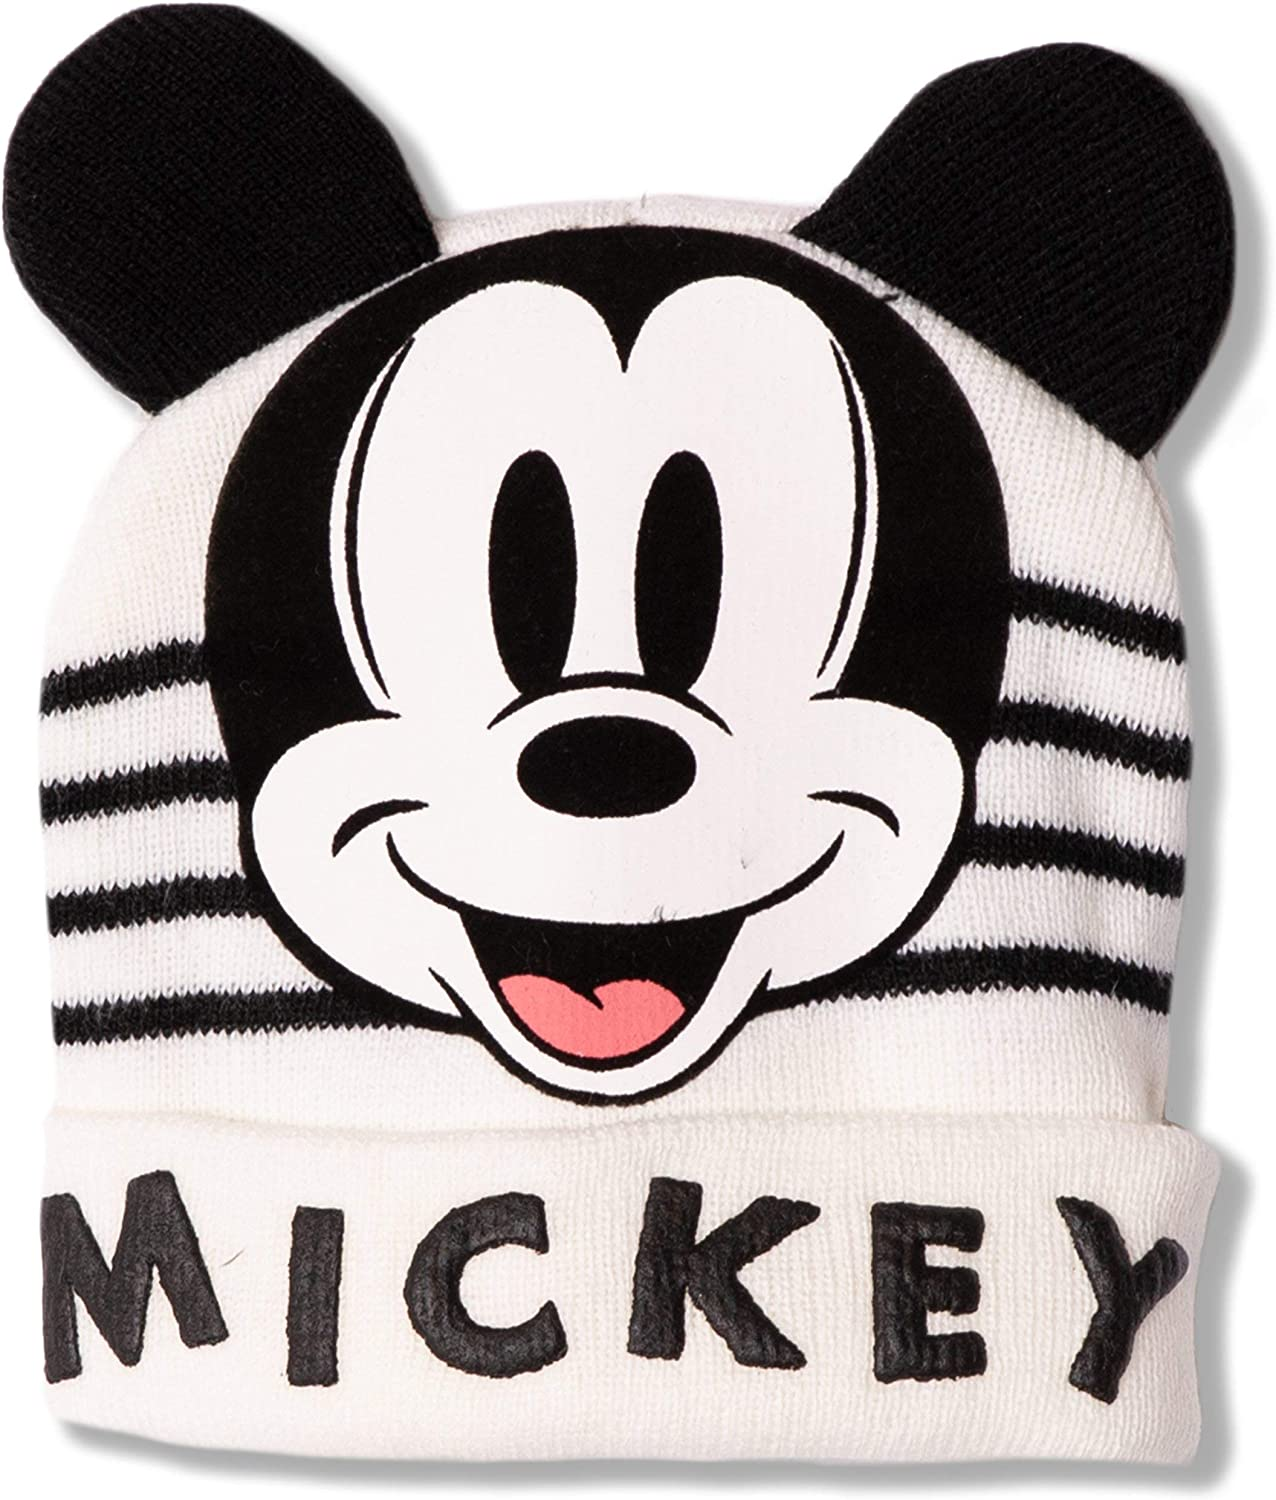 Red 50 Disney Mickey Mouse Knitted Baby Boys Girls Warm Winter Beanie Hat with Character Ears